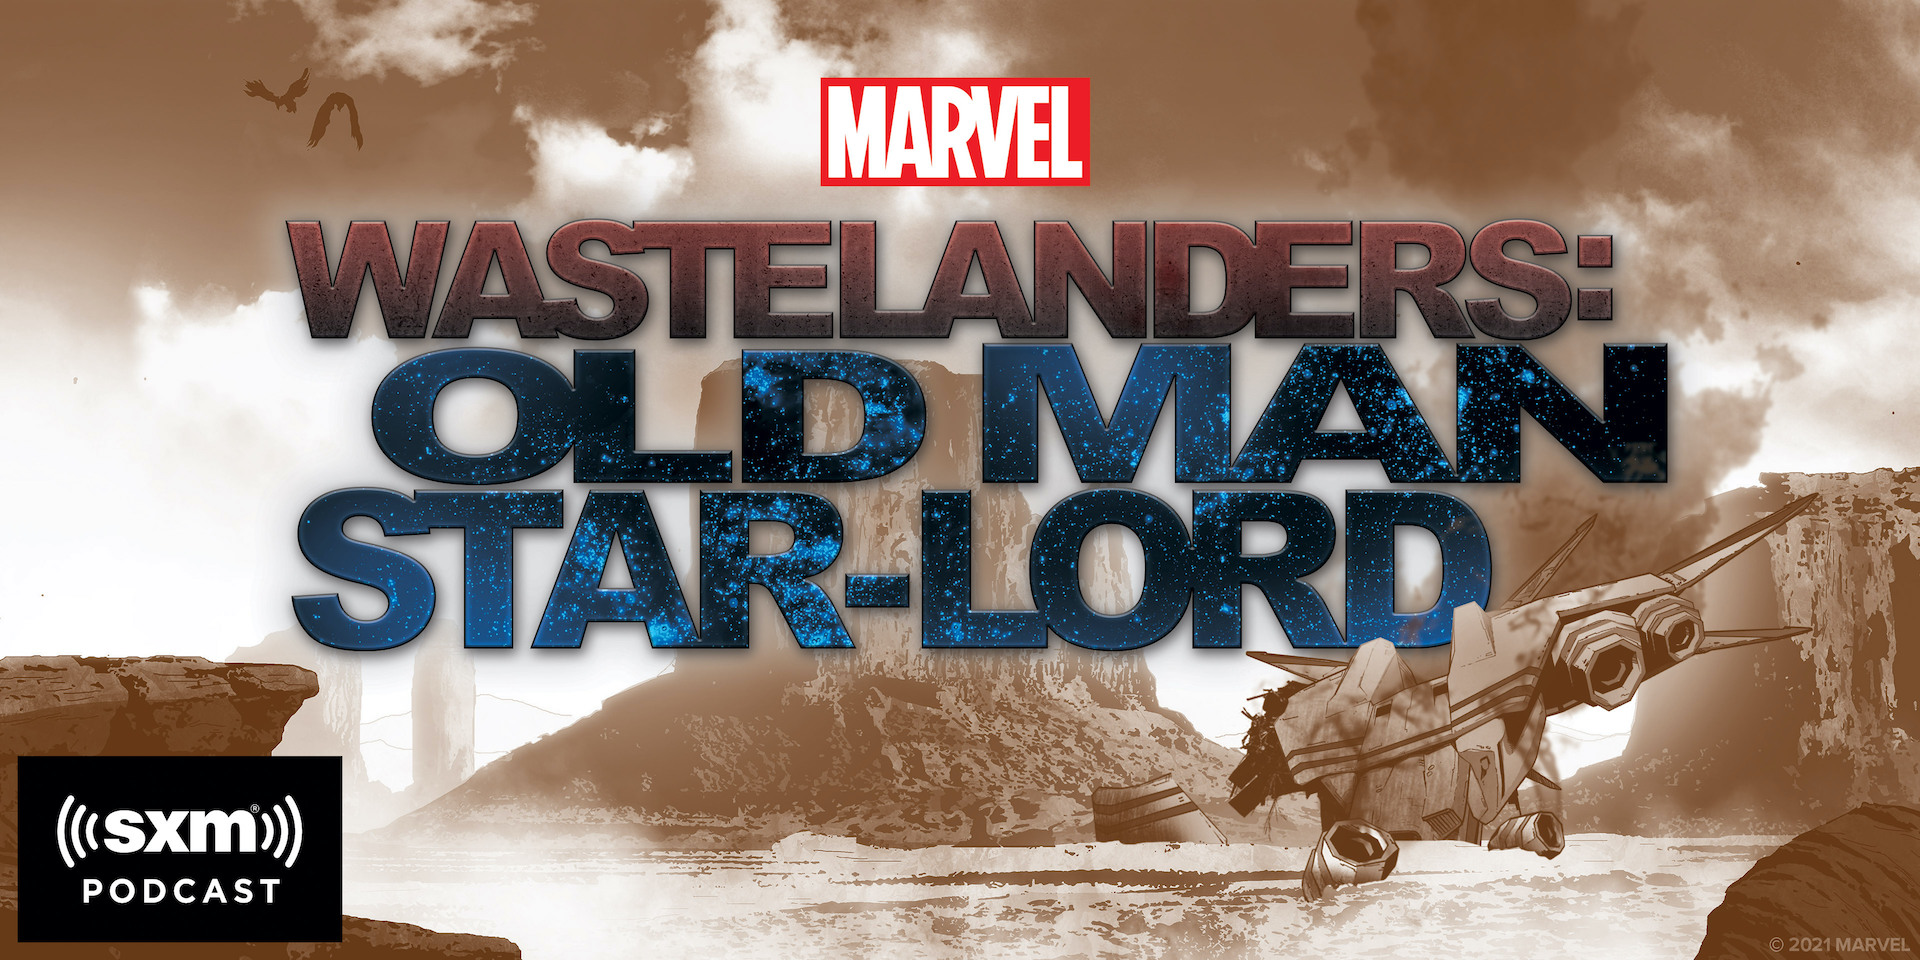 Marvel and SiriusXM's to premiere first scripted podcast 'Marvel's Wastelanders: Old Man Star-Lord' on June 1